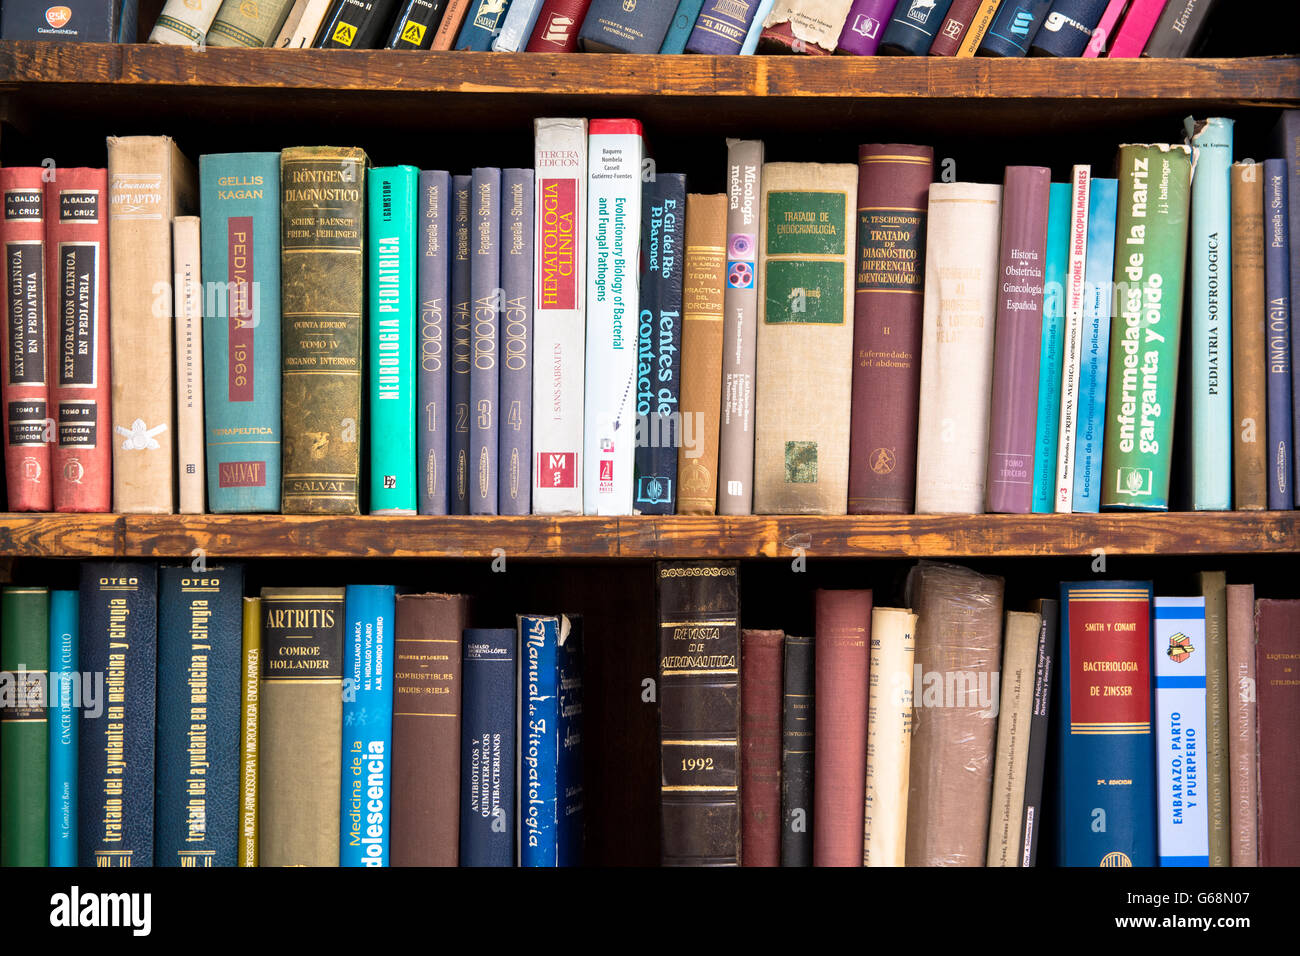 Old Books Displayed in a Bookshelf - Stock Image